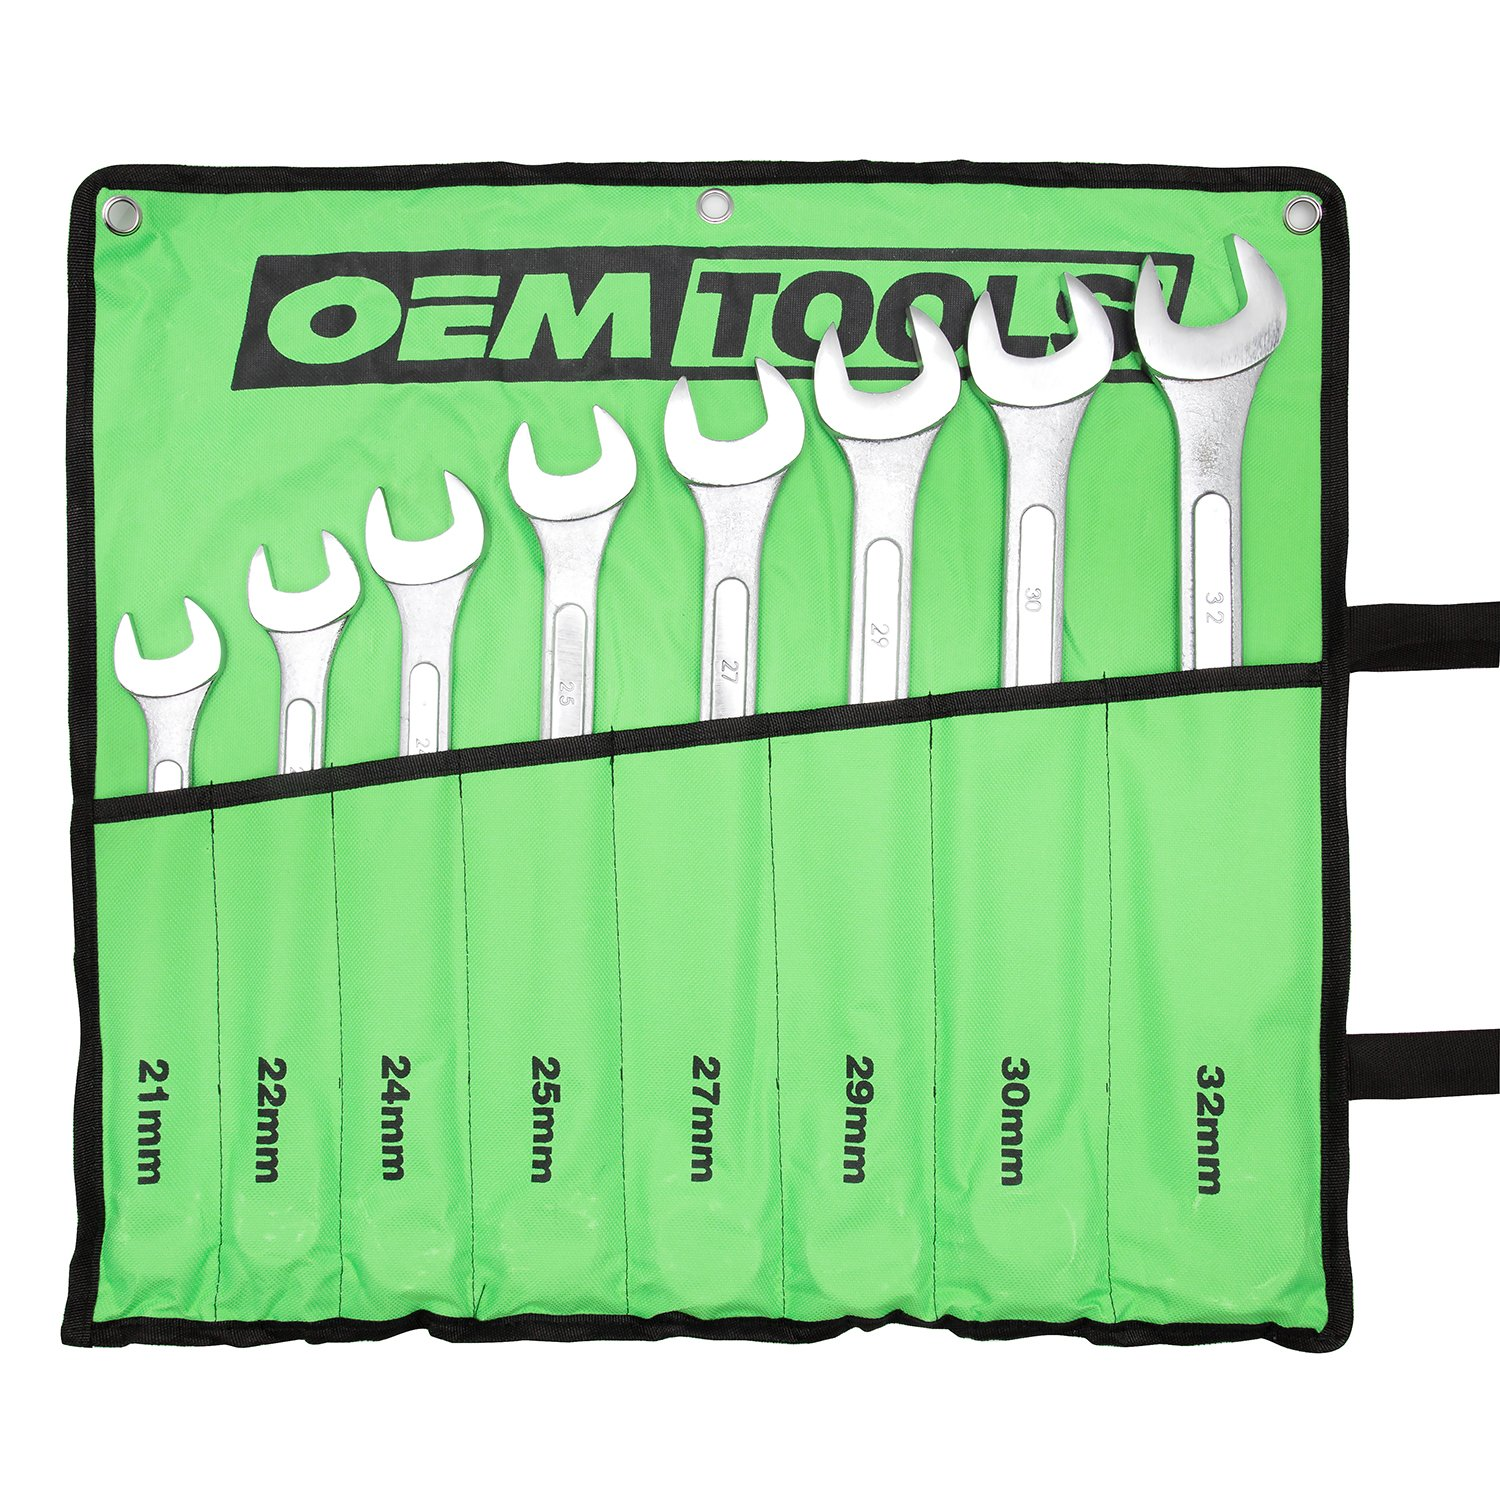 OEMTOOLS 22120 8 Piece Combination Wrench Set by OEMTOOLS